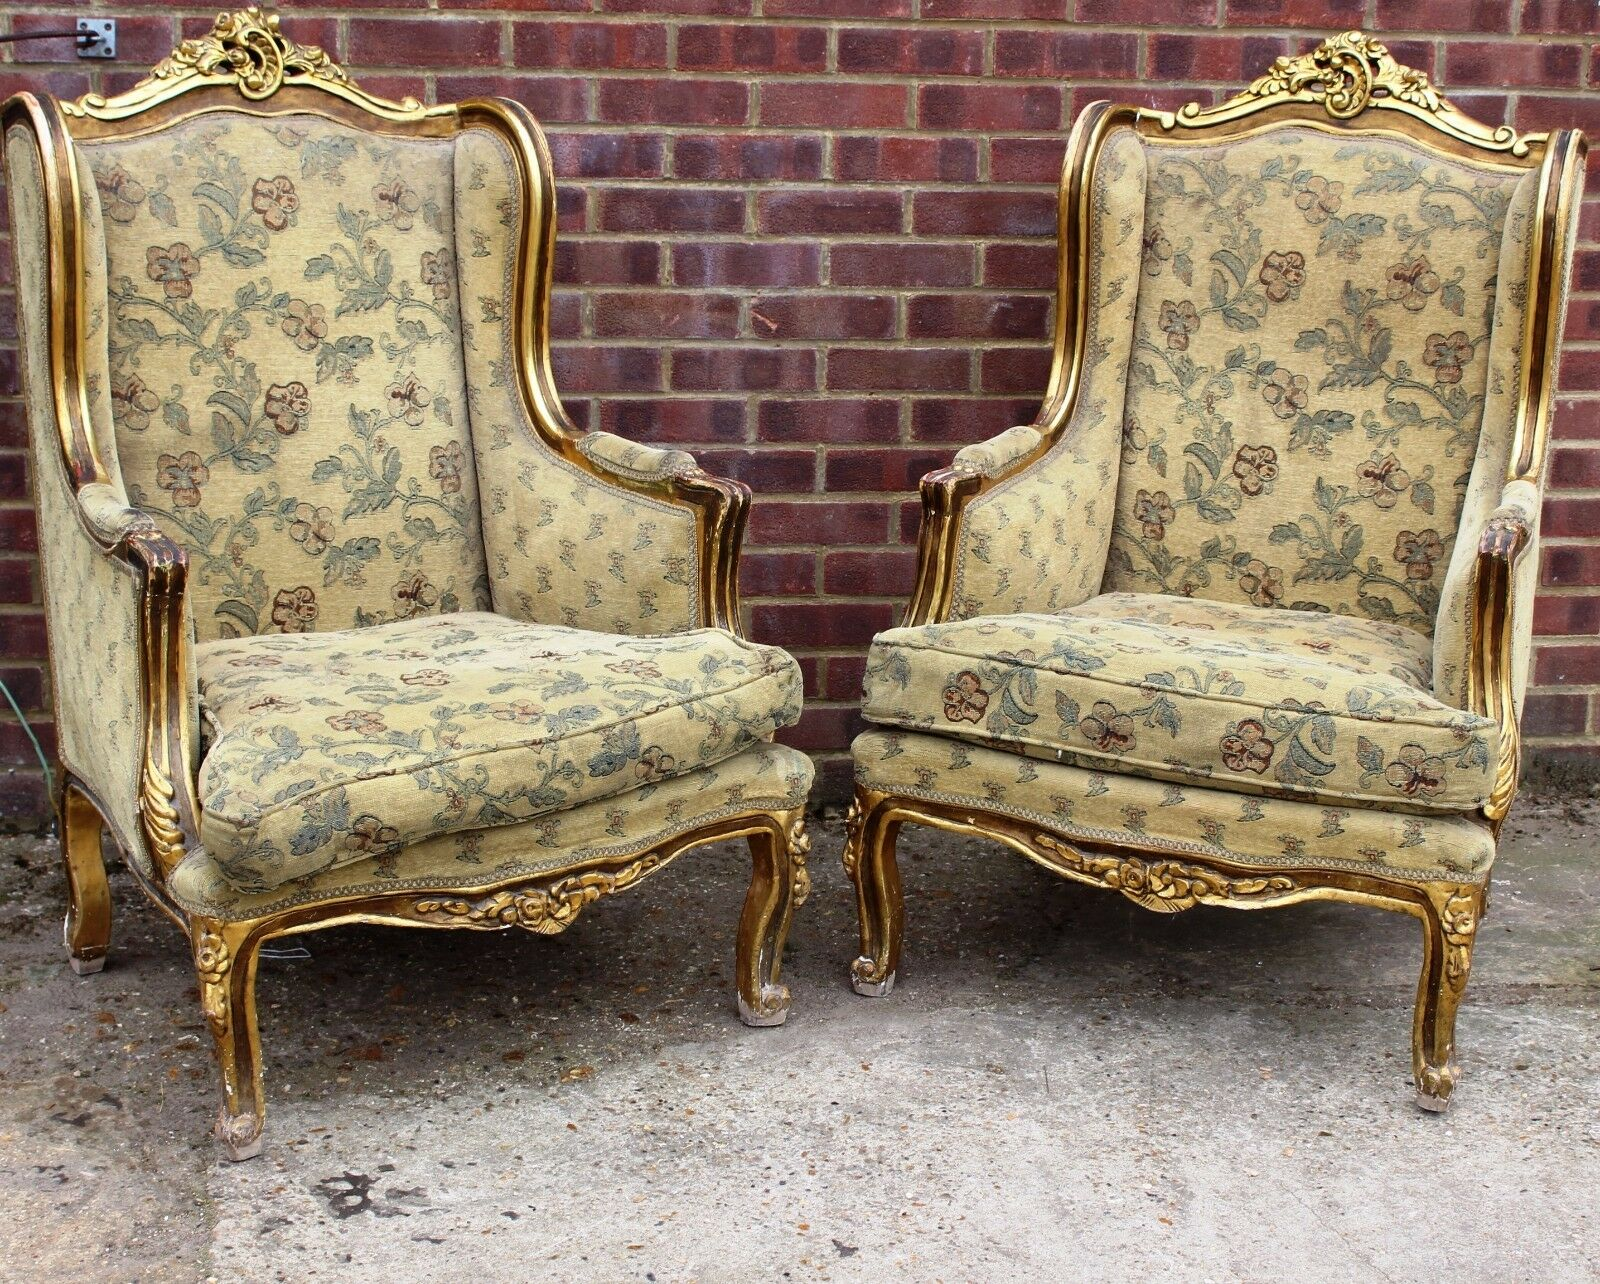 Antique French Furniture - Pair Of Wingback Armchairs - Louis - Gold C337